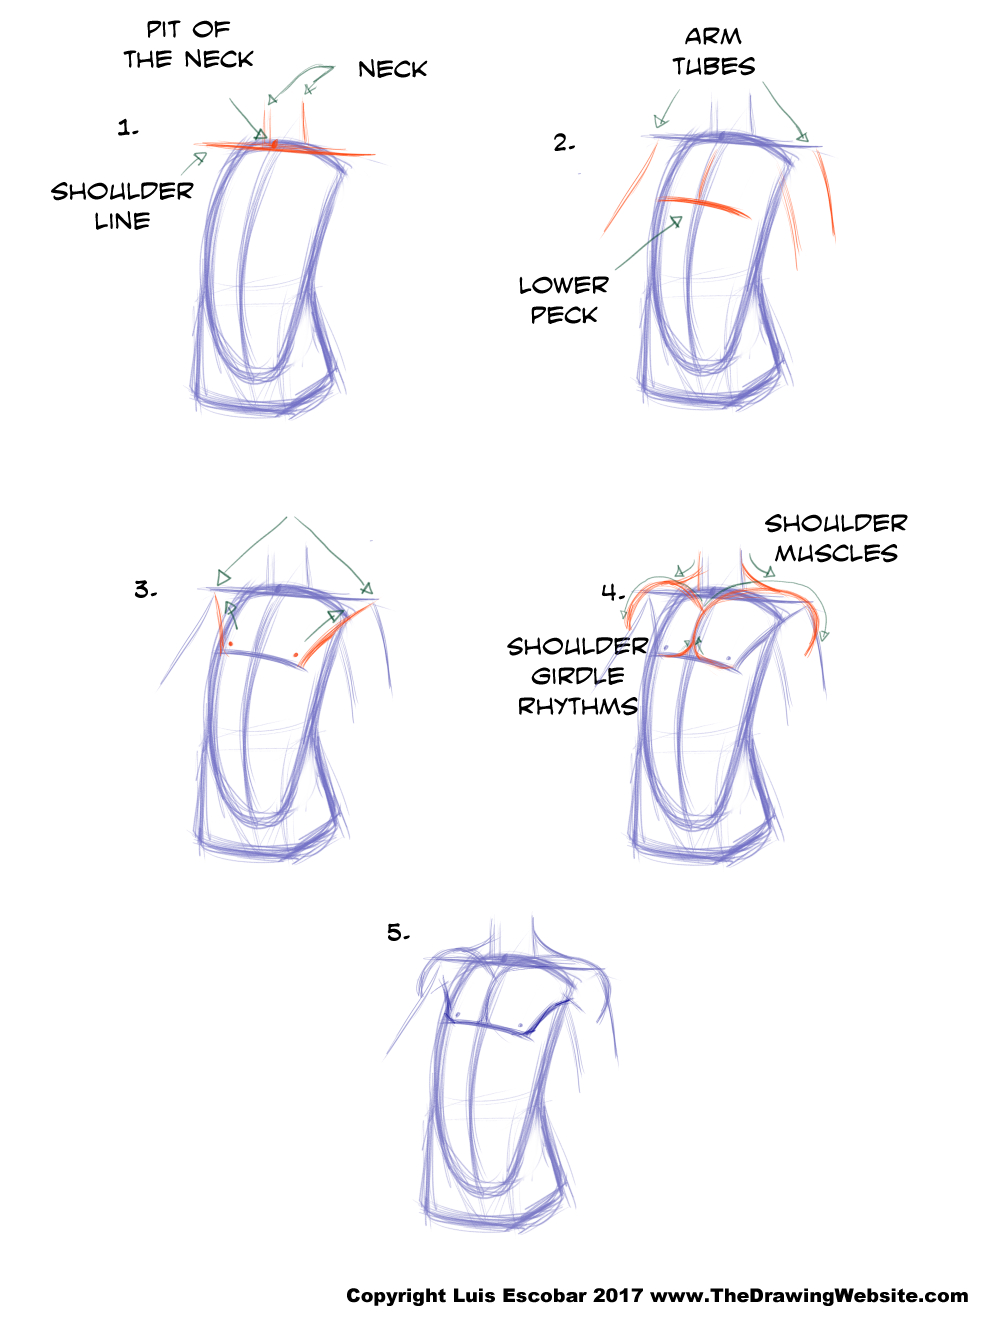 But What If You Want To Draw A Female Chest Area? Well, It's Pretty Much  The Same Thing With Some Slight Adjustments: